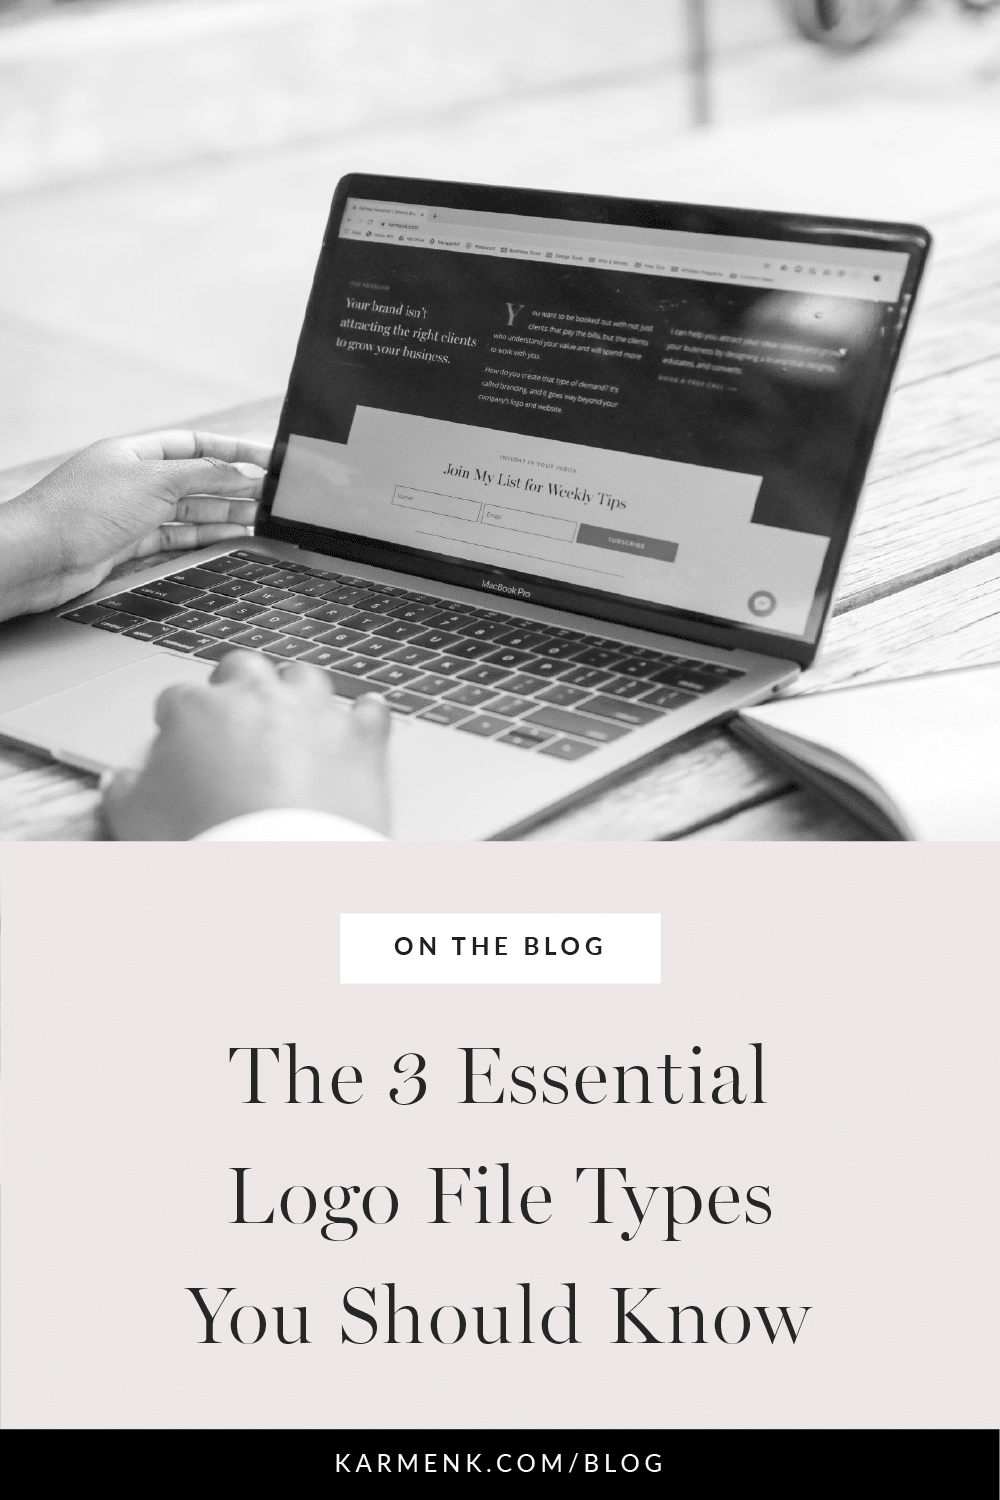 The 3 Essential Logo File Types You Should Know